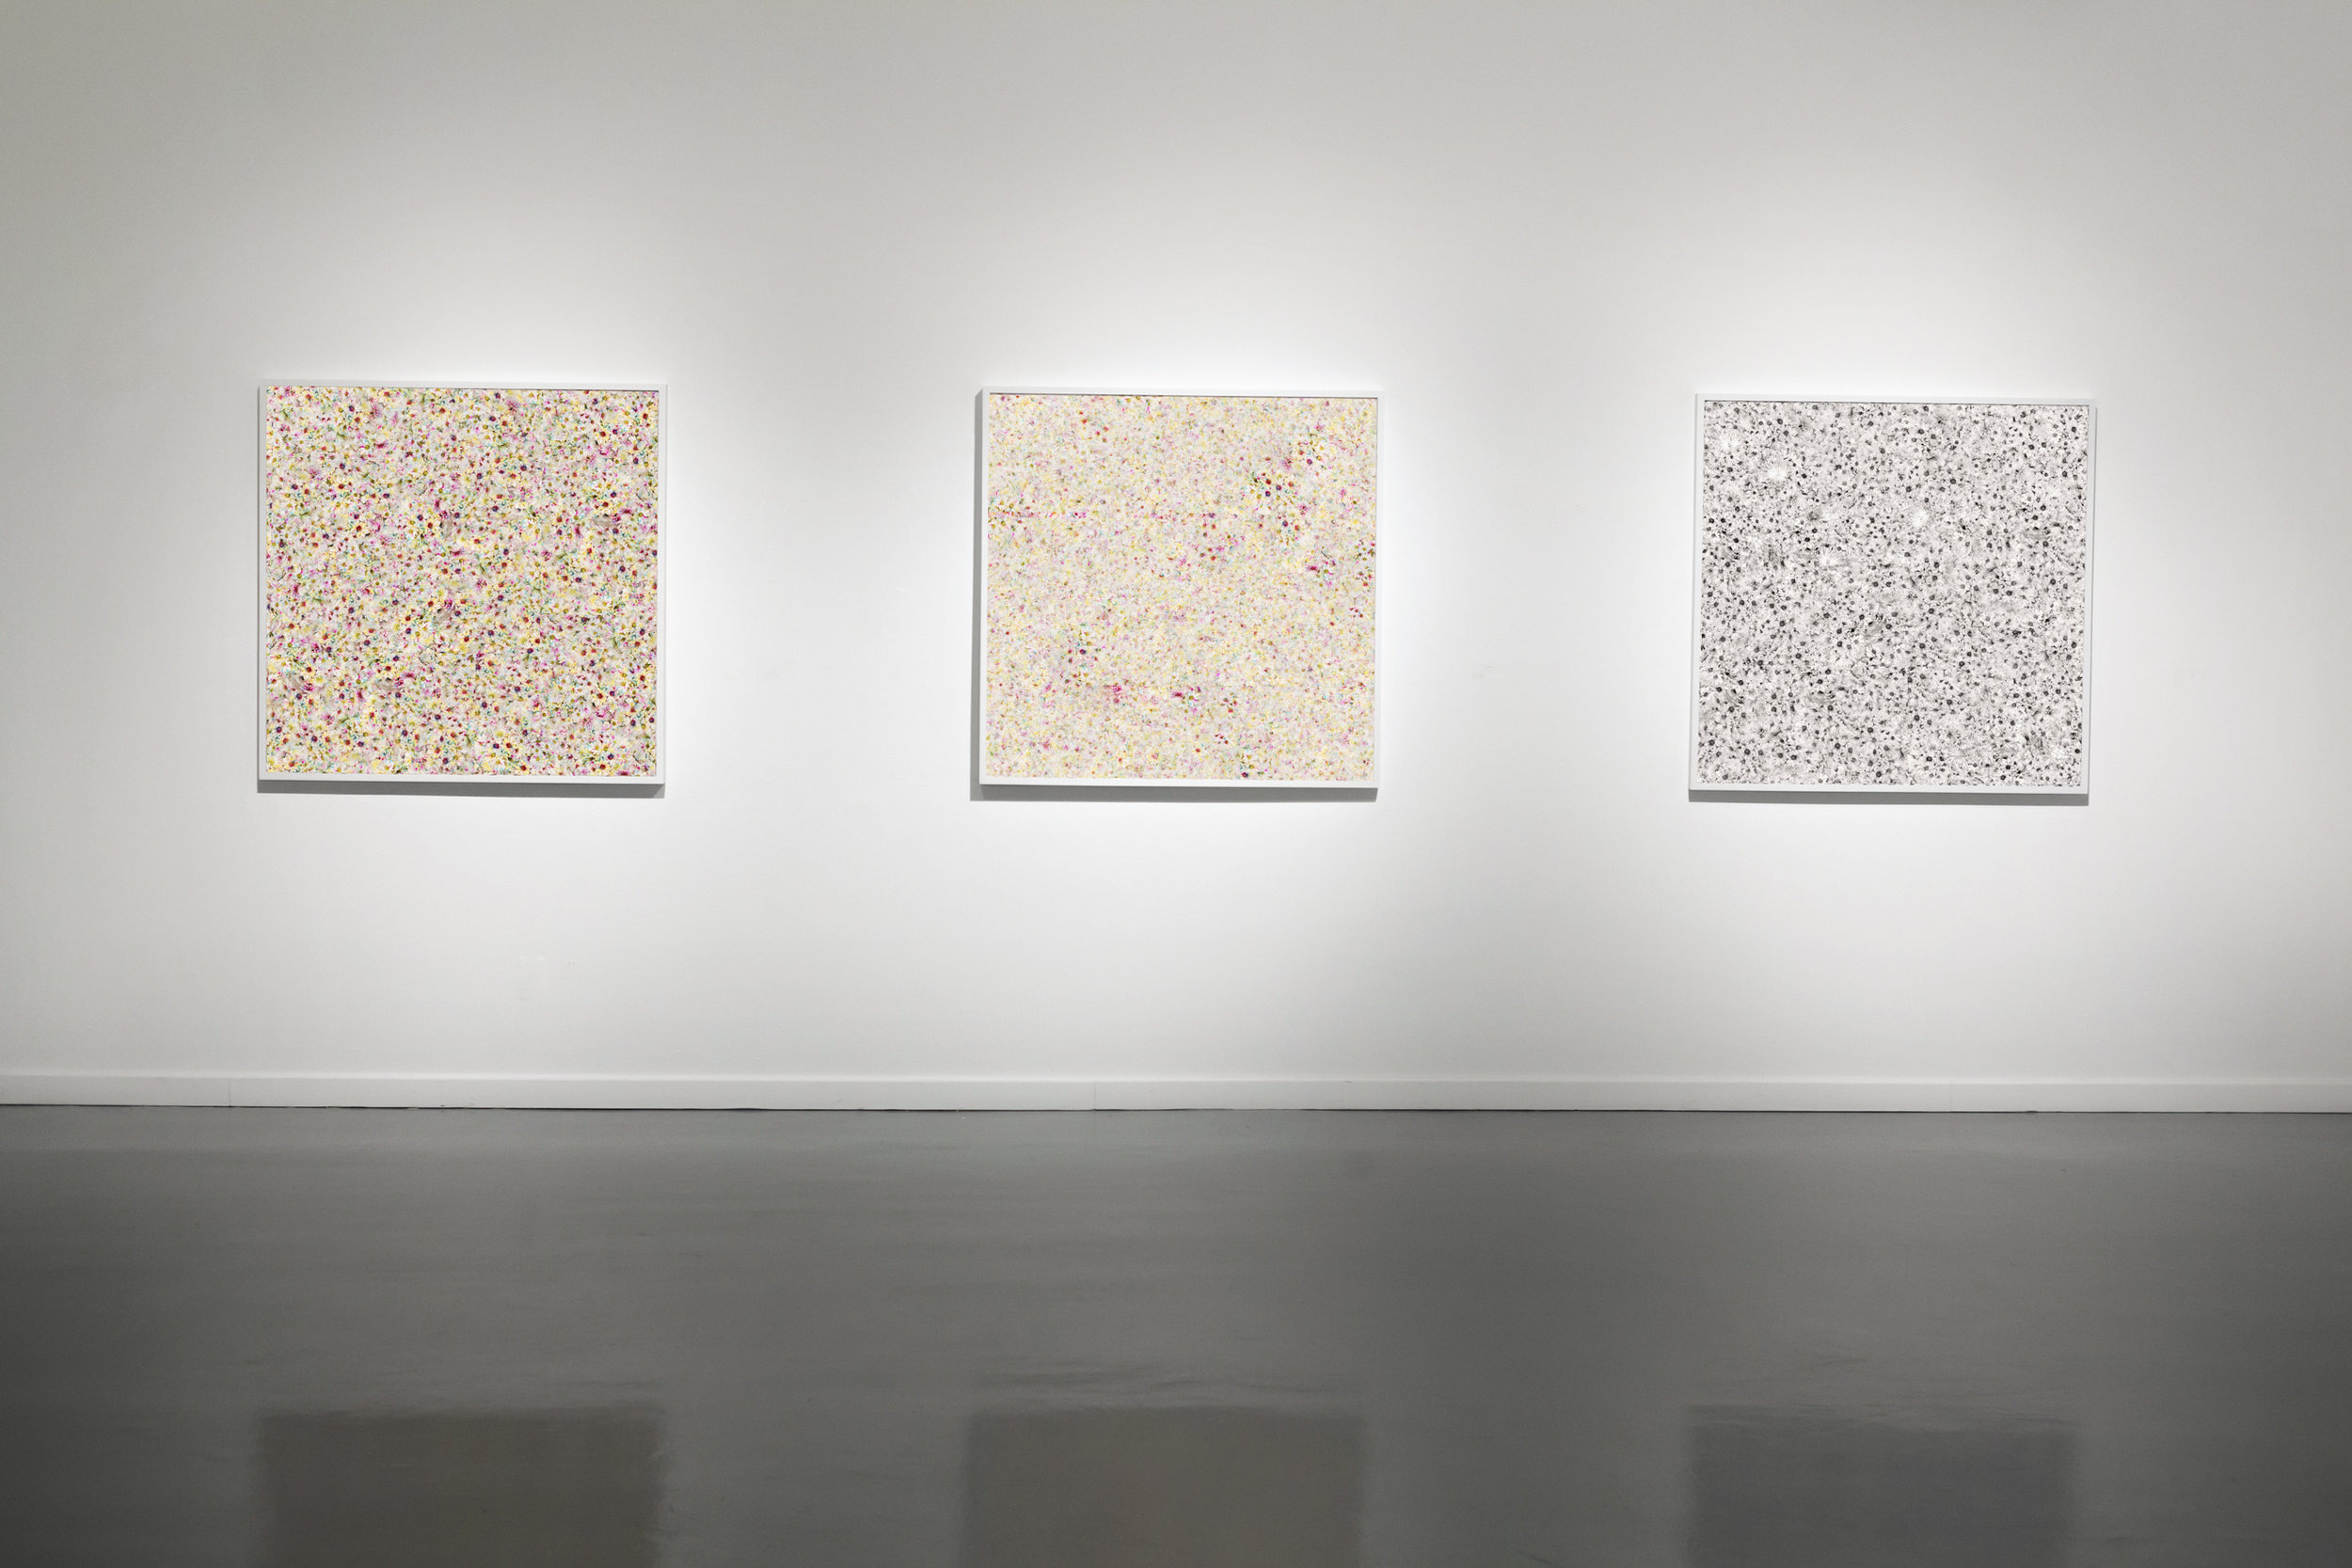 Flower Field Variations 1,2,3,  at University of Texas Arlington Gallery, Arlington, TX, 2017